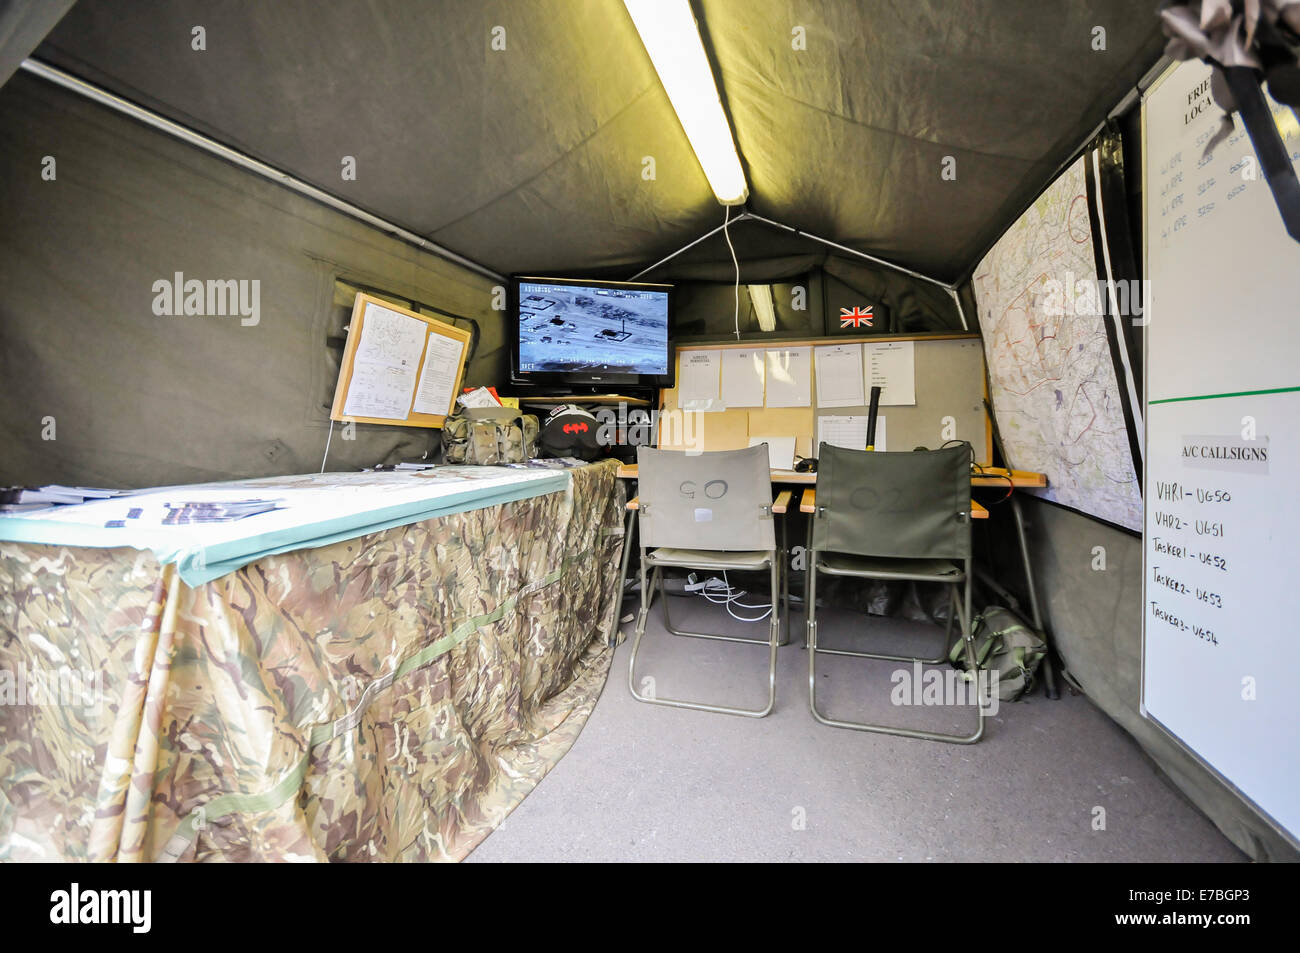 Mobile military command centre, set up on a camouflaged tent. - Stock Image